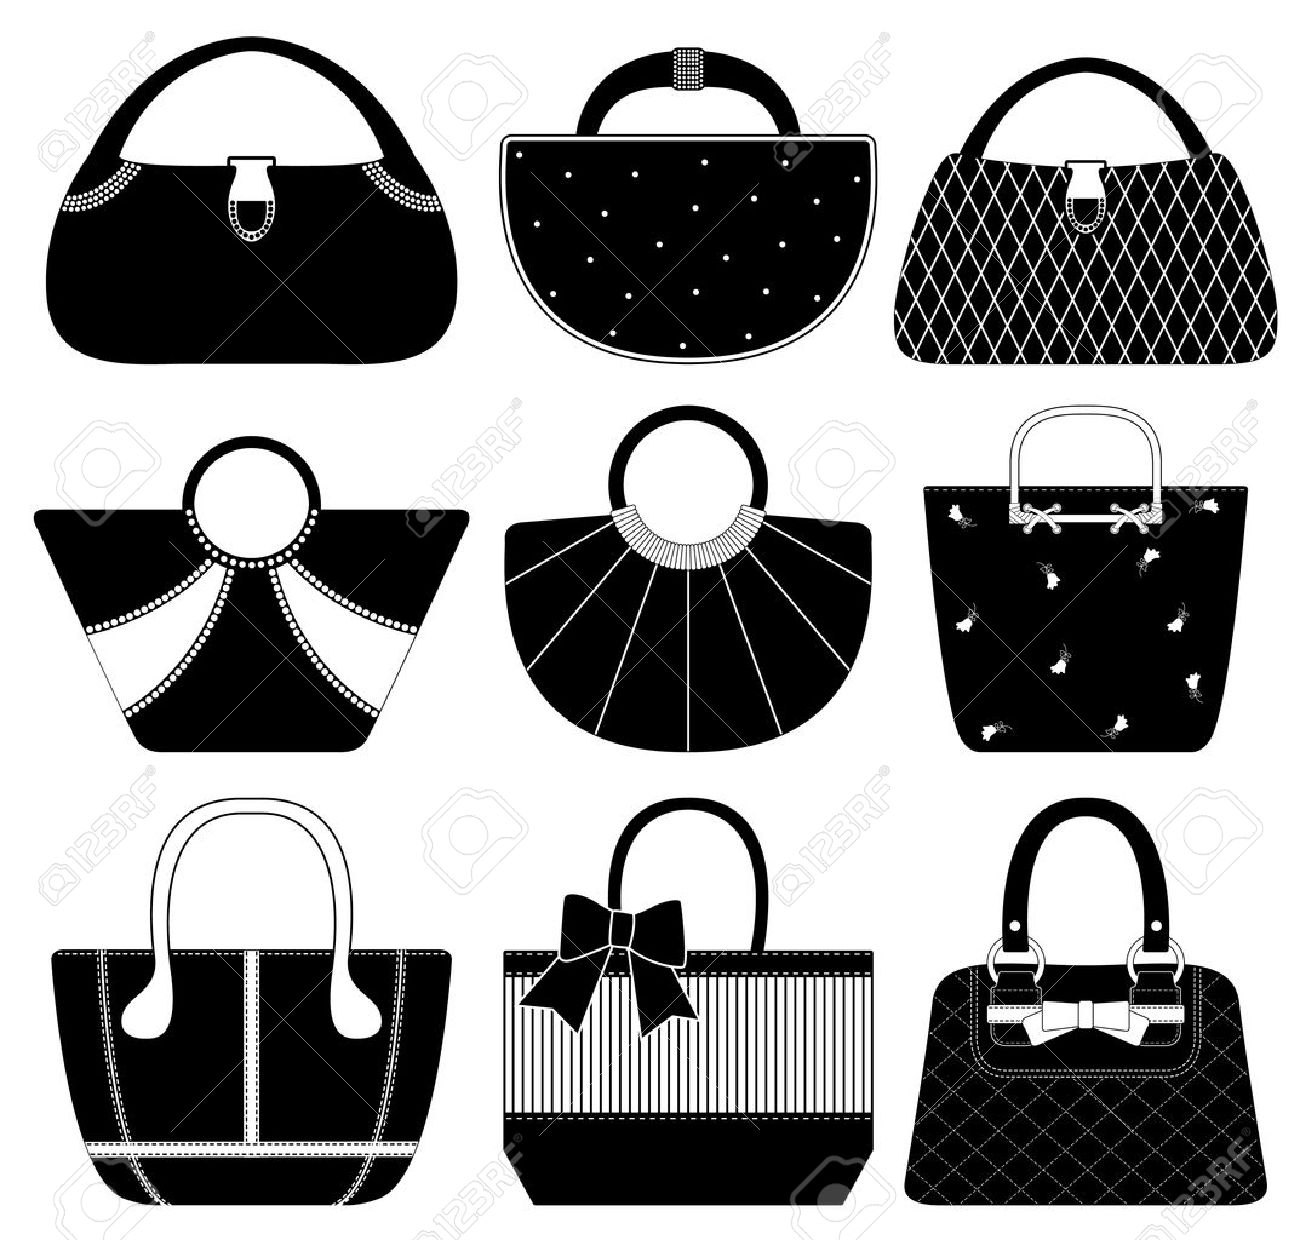 Female Bag Handbag Purse Fashion Woman Royalty Free Cliparts ... 1ad5a0367d